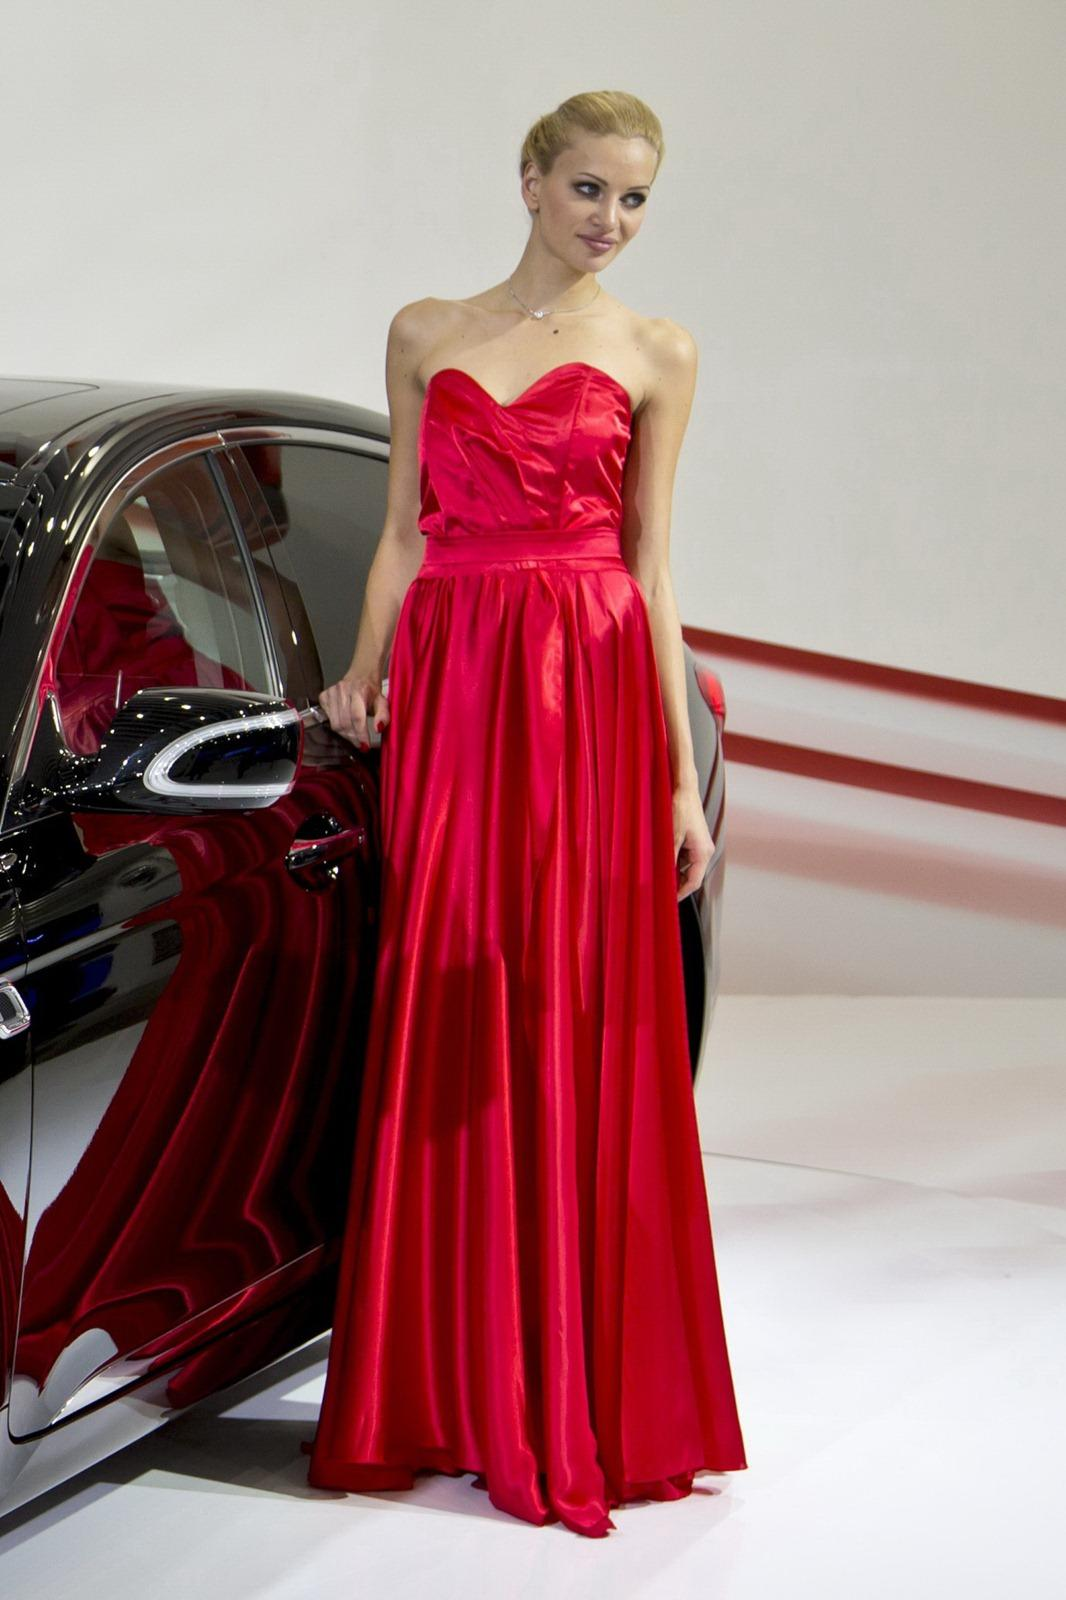 From Russia With Love: The Girls of the Moscow Auto Salon